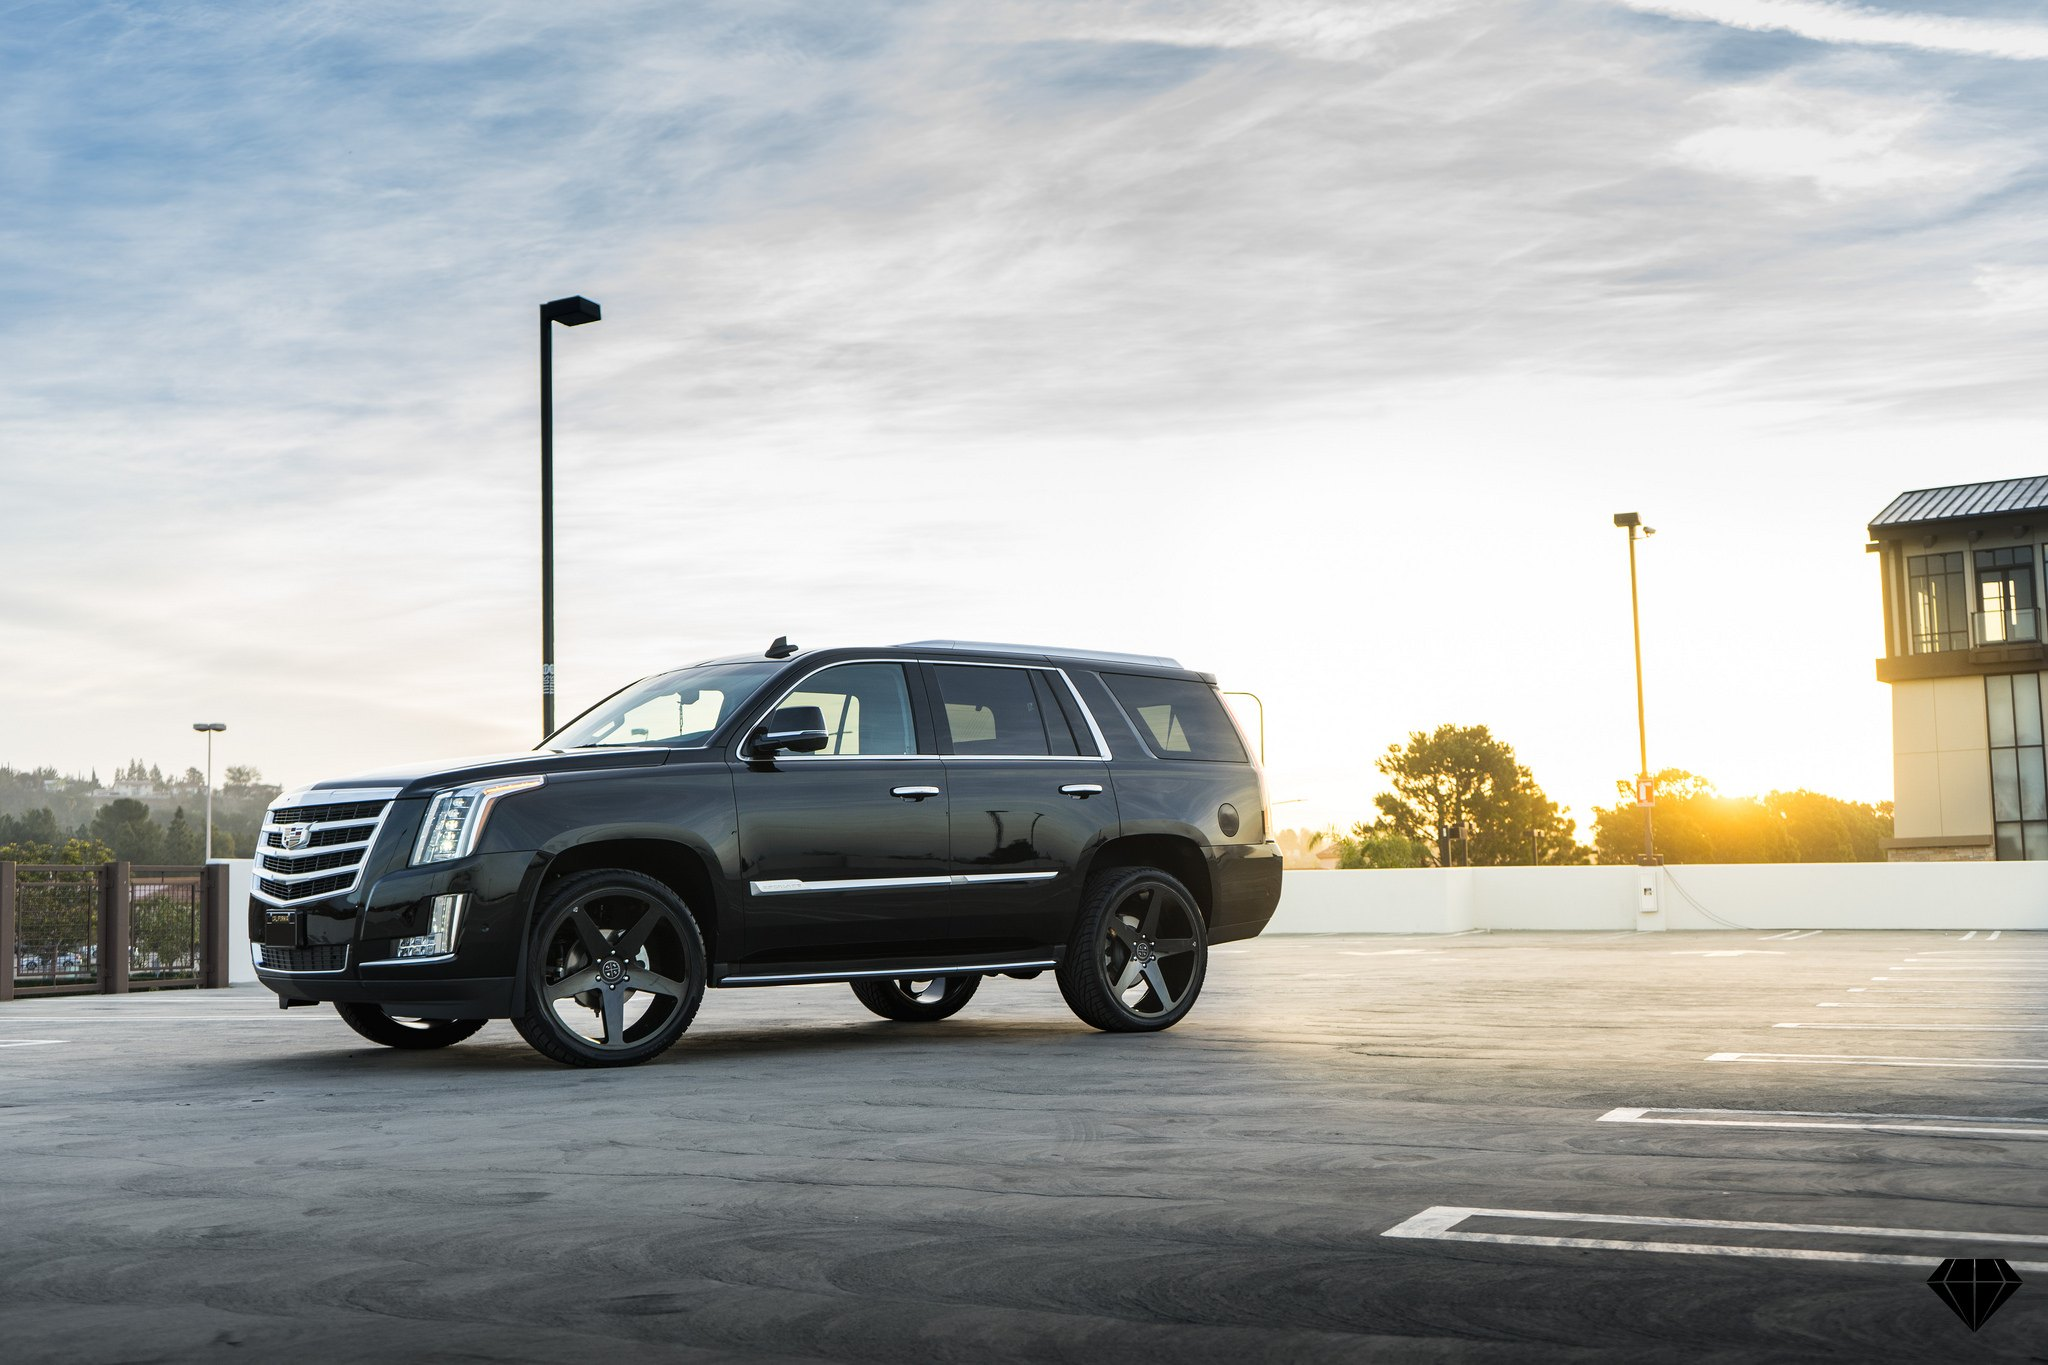 Vip Appearance Of Black Cadillac Escalade Emphasized With Custom